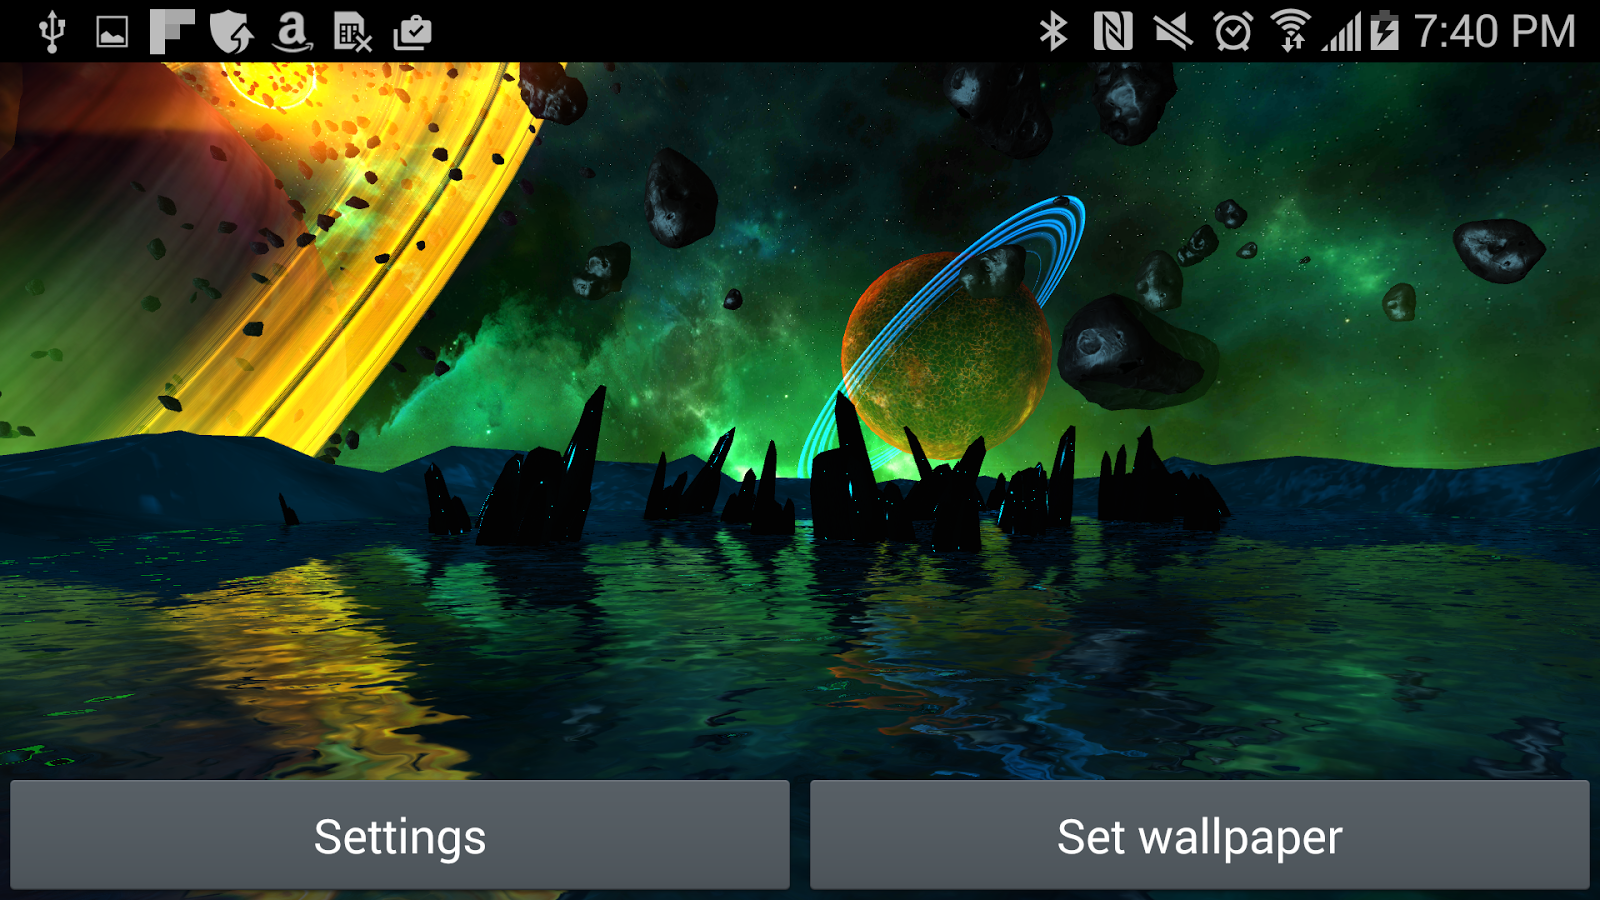 Far Galaxy 3D Live Wallpaper Screenshot 17